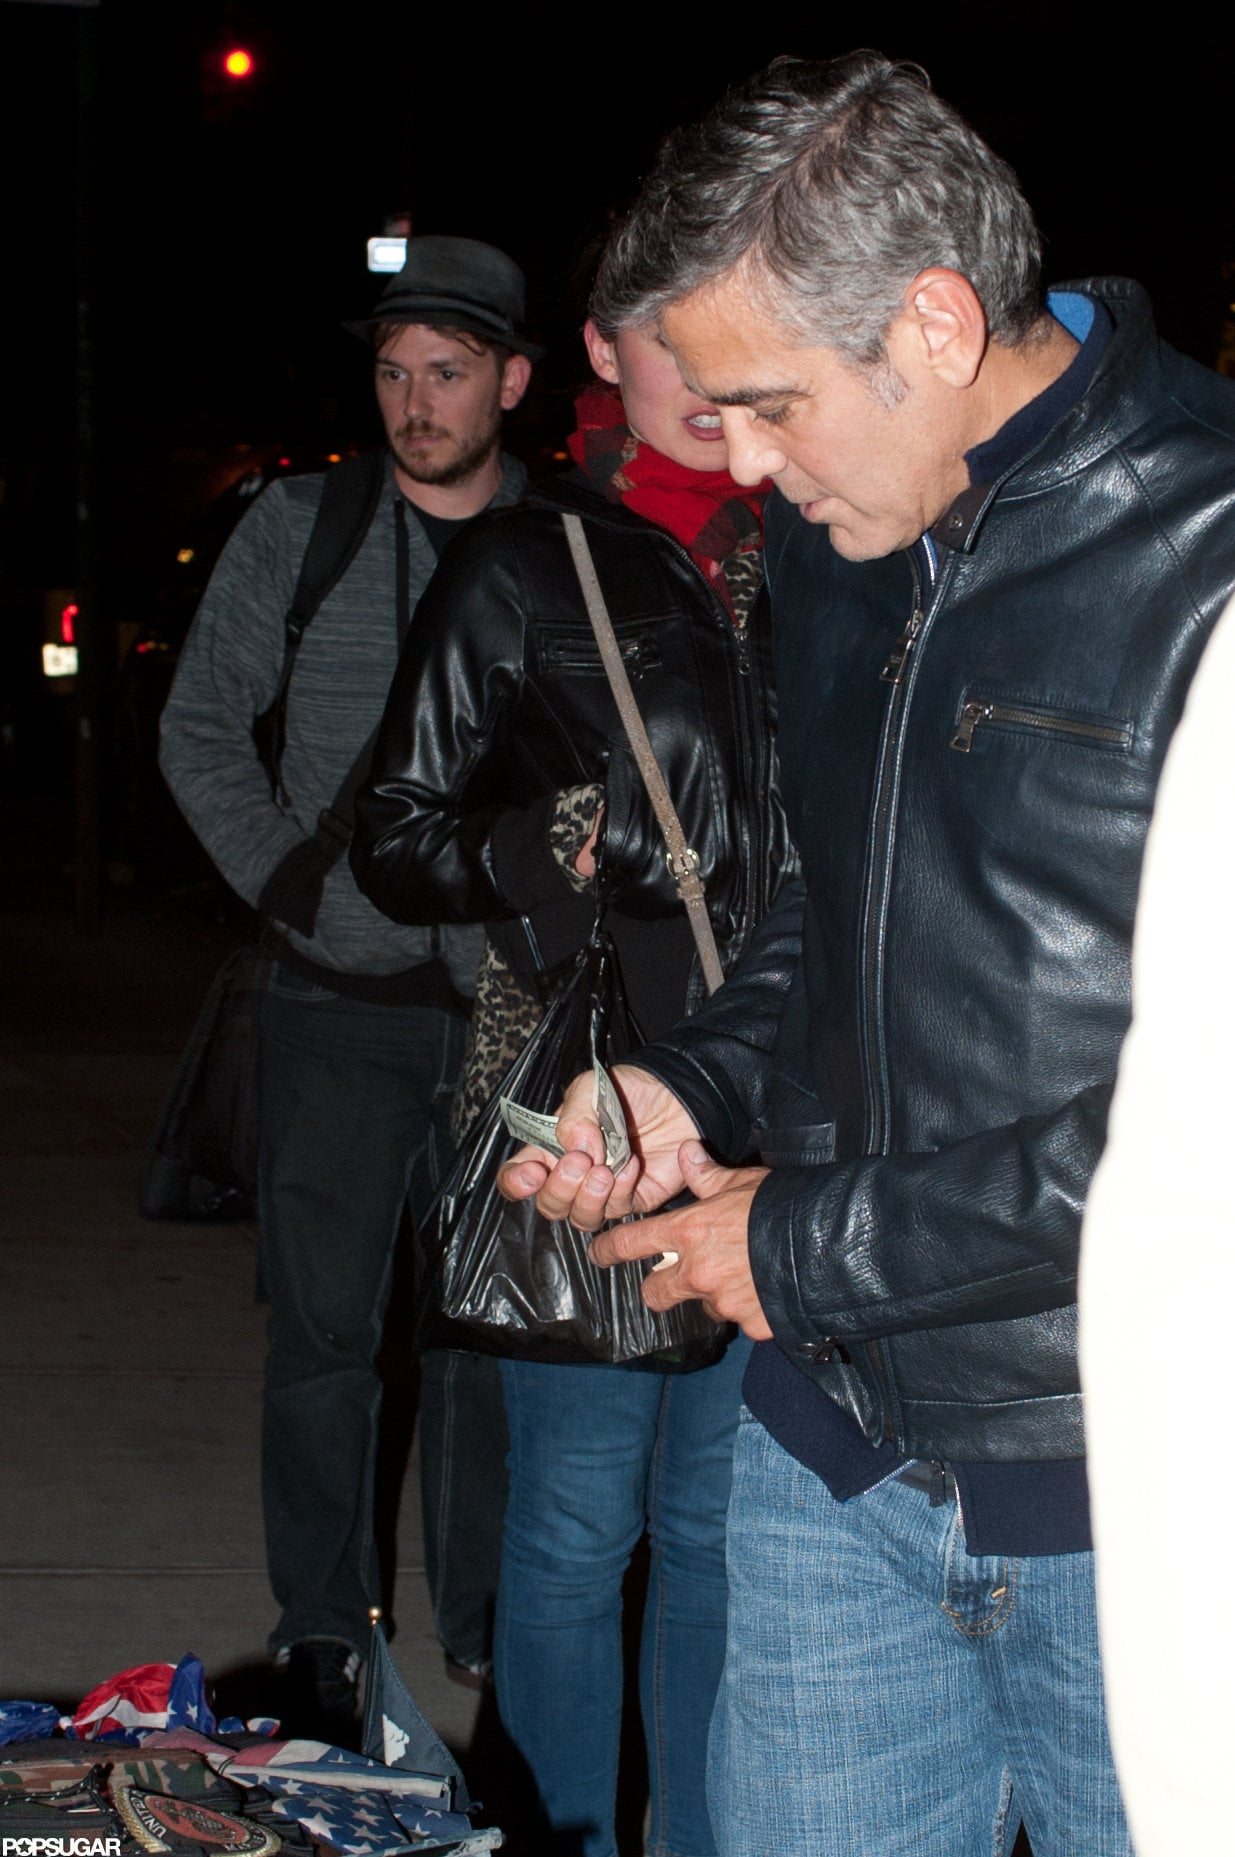 George Clooney and Stacy Keibler Hit NYC and Do Dinner With Bill